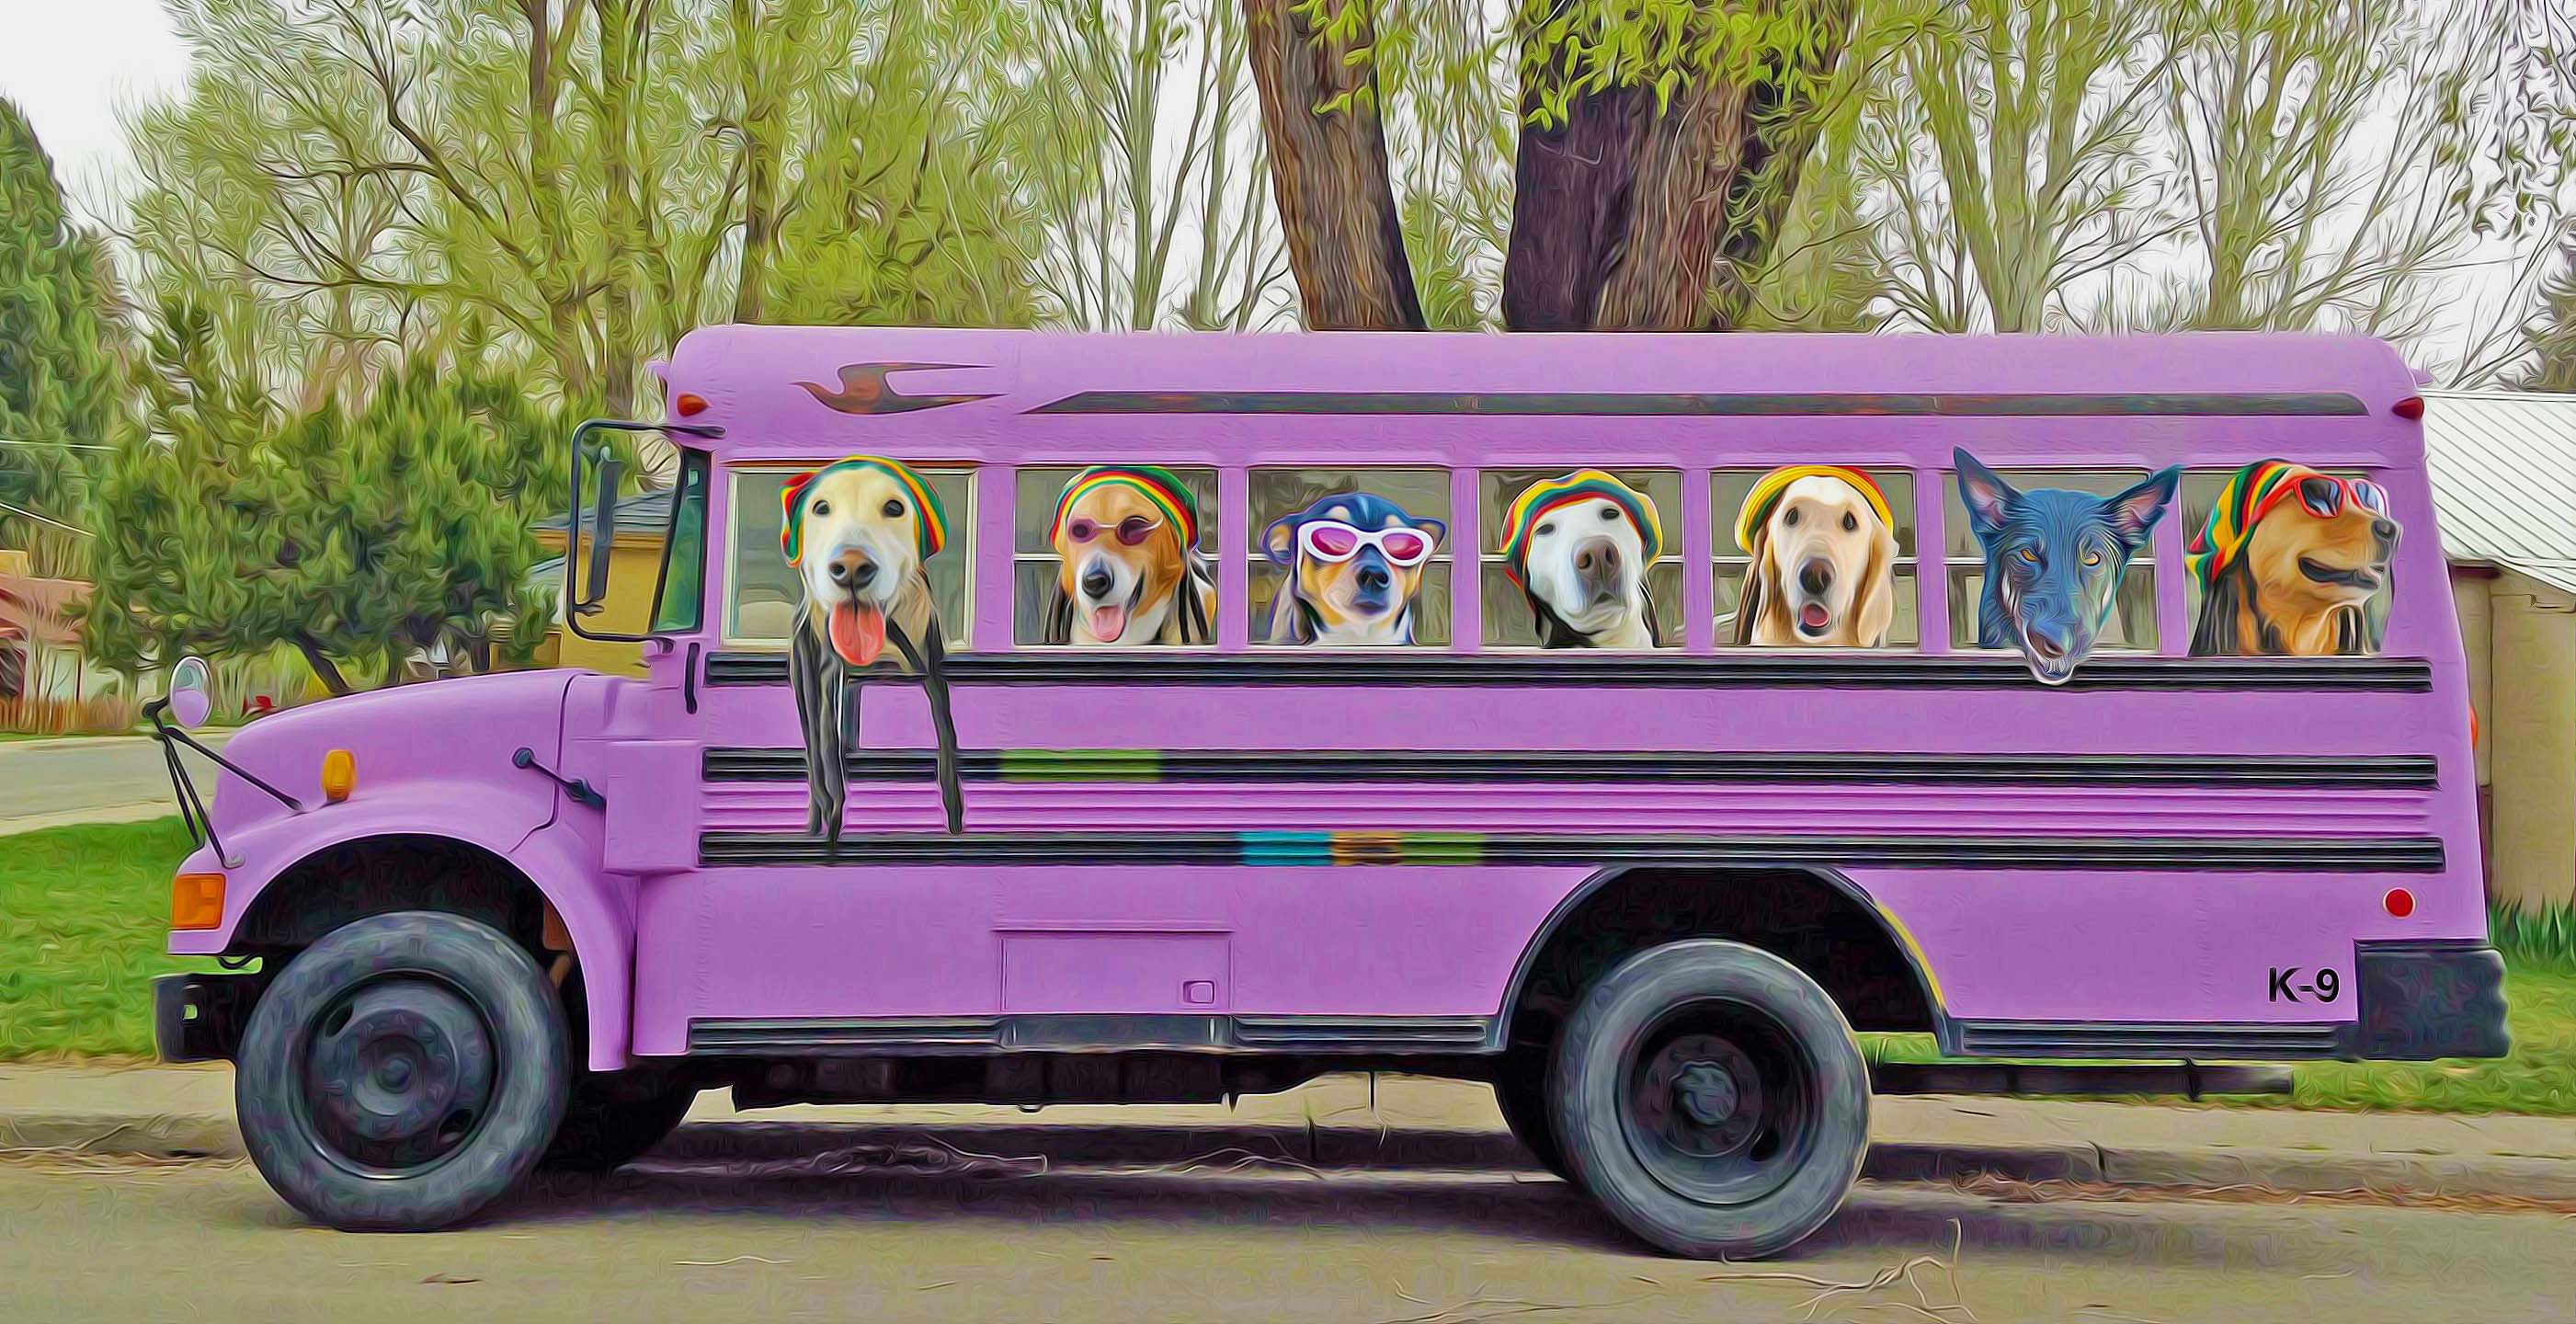 paint_purple bus with passengers